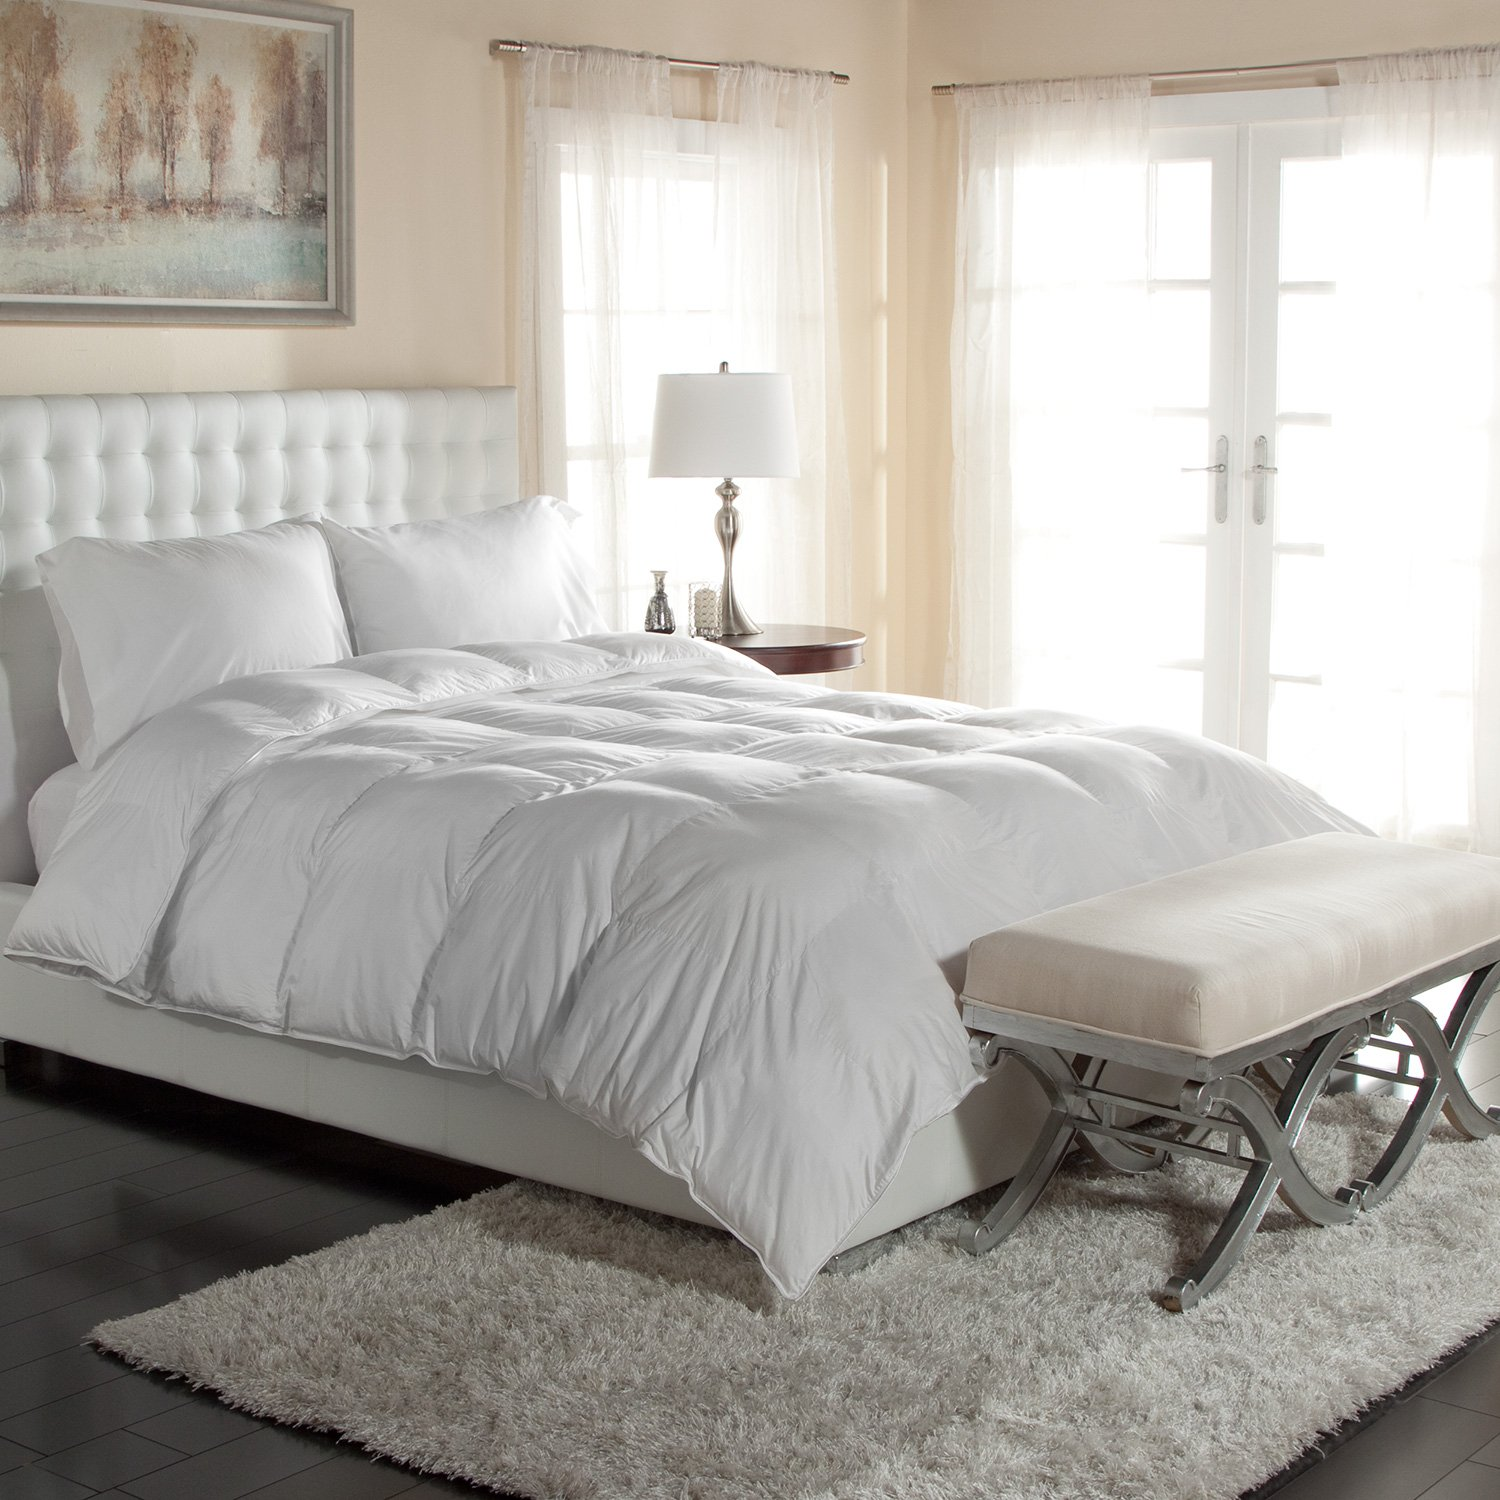 Luxury Silky Cotton Sateen Oversized White Down Comforters - Great for the Master Bedroom Comforter (Super King)